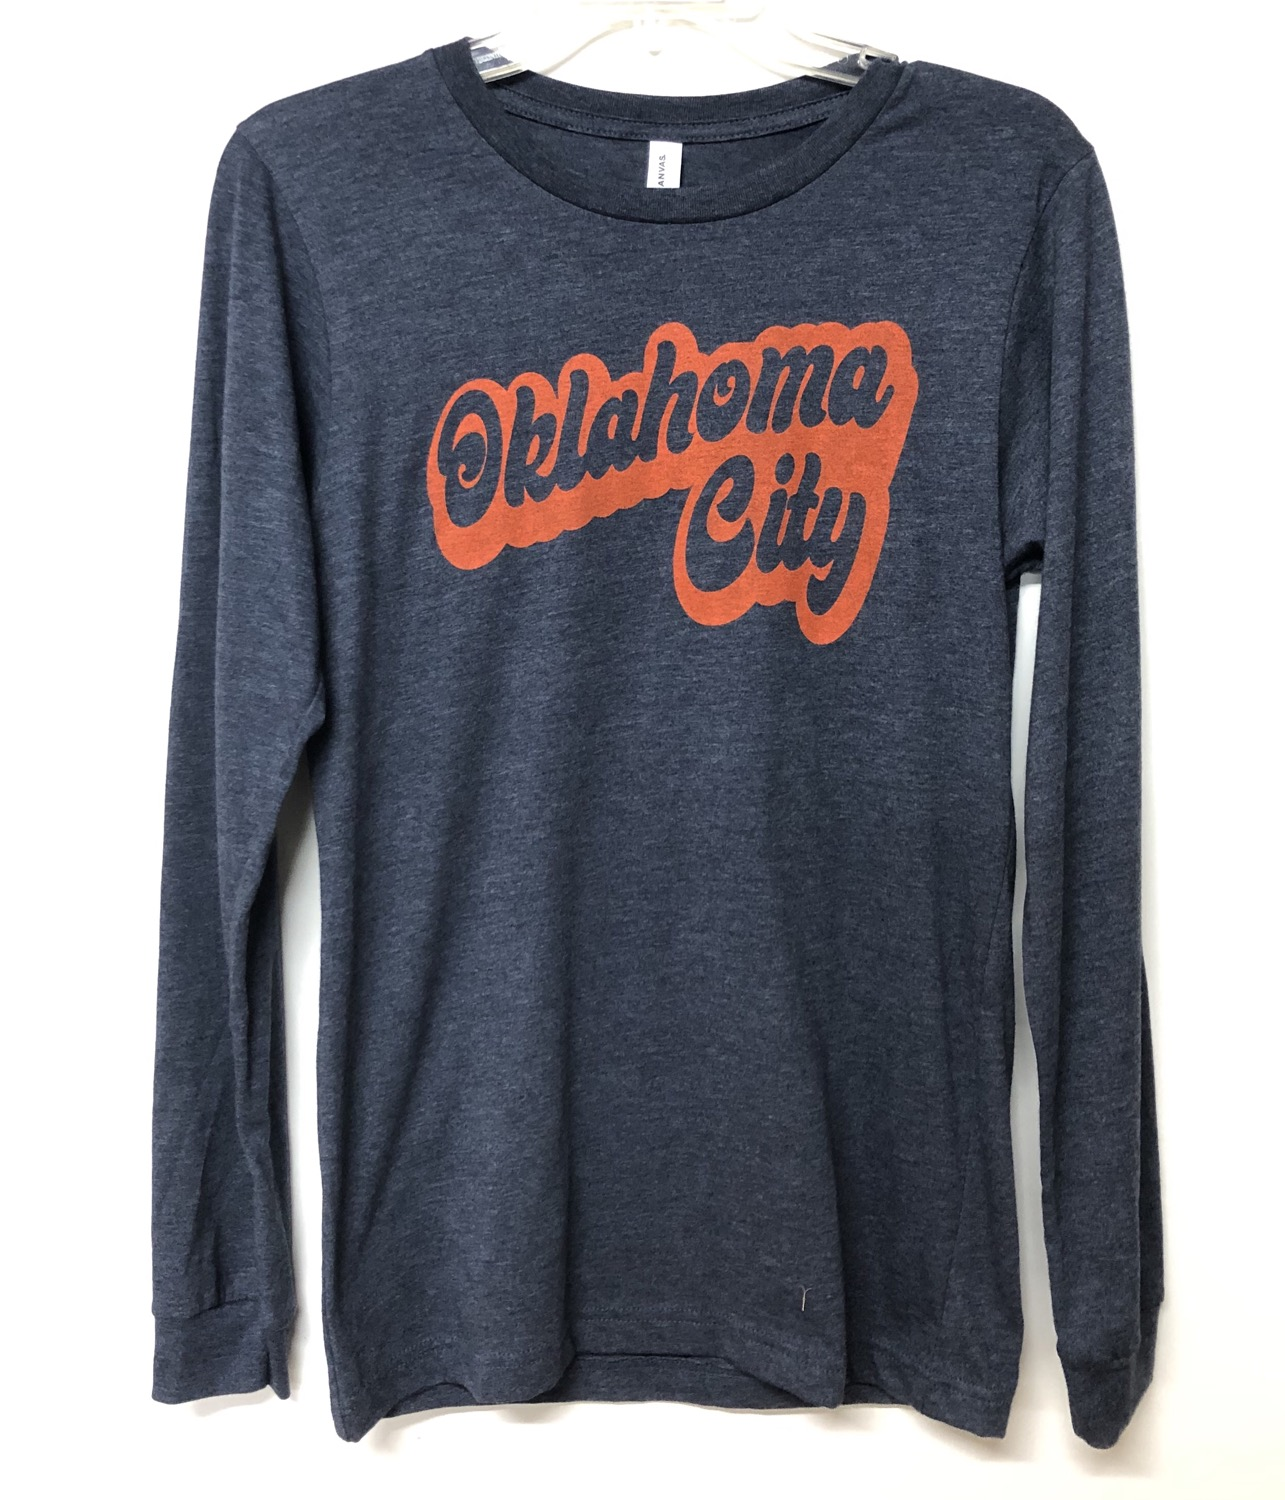 Oklahoma City Long Sleeve